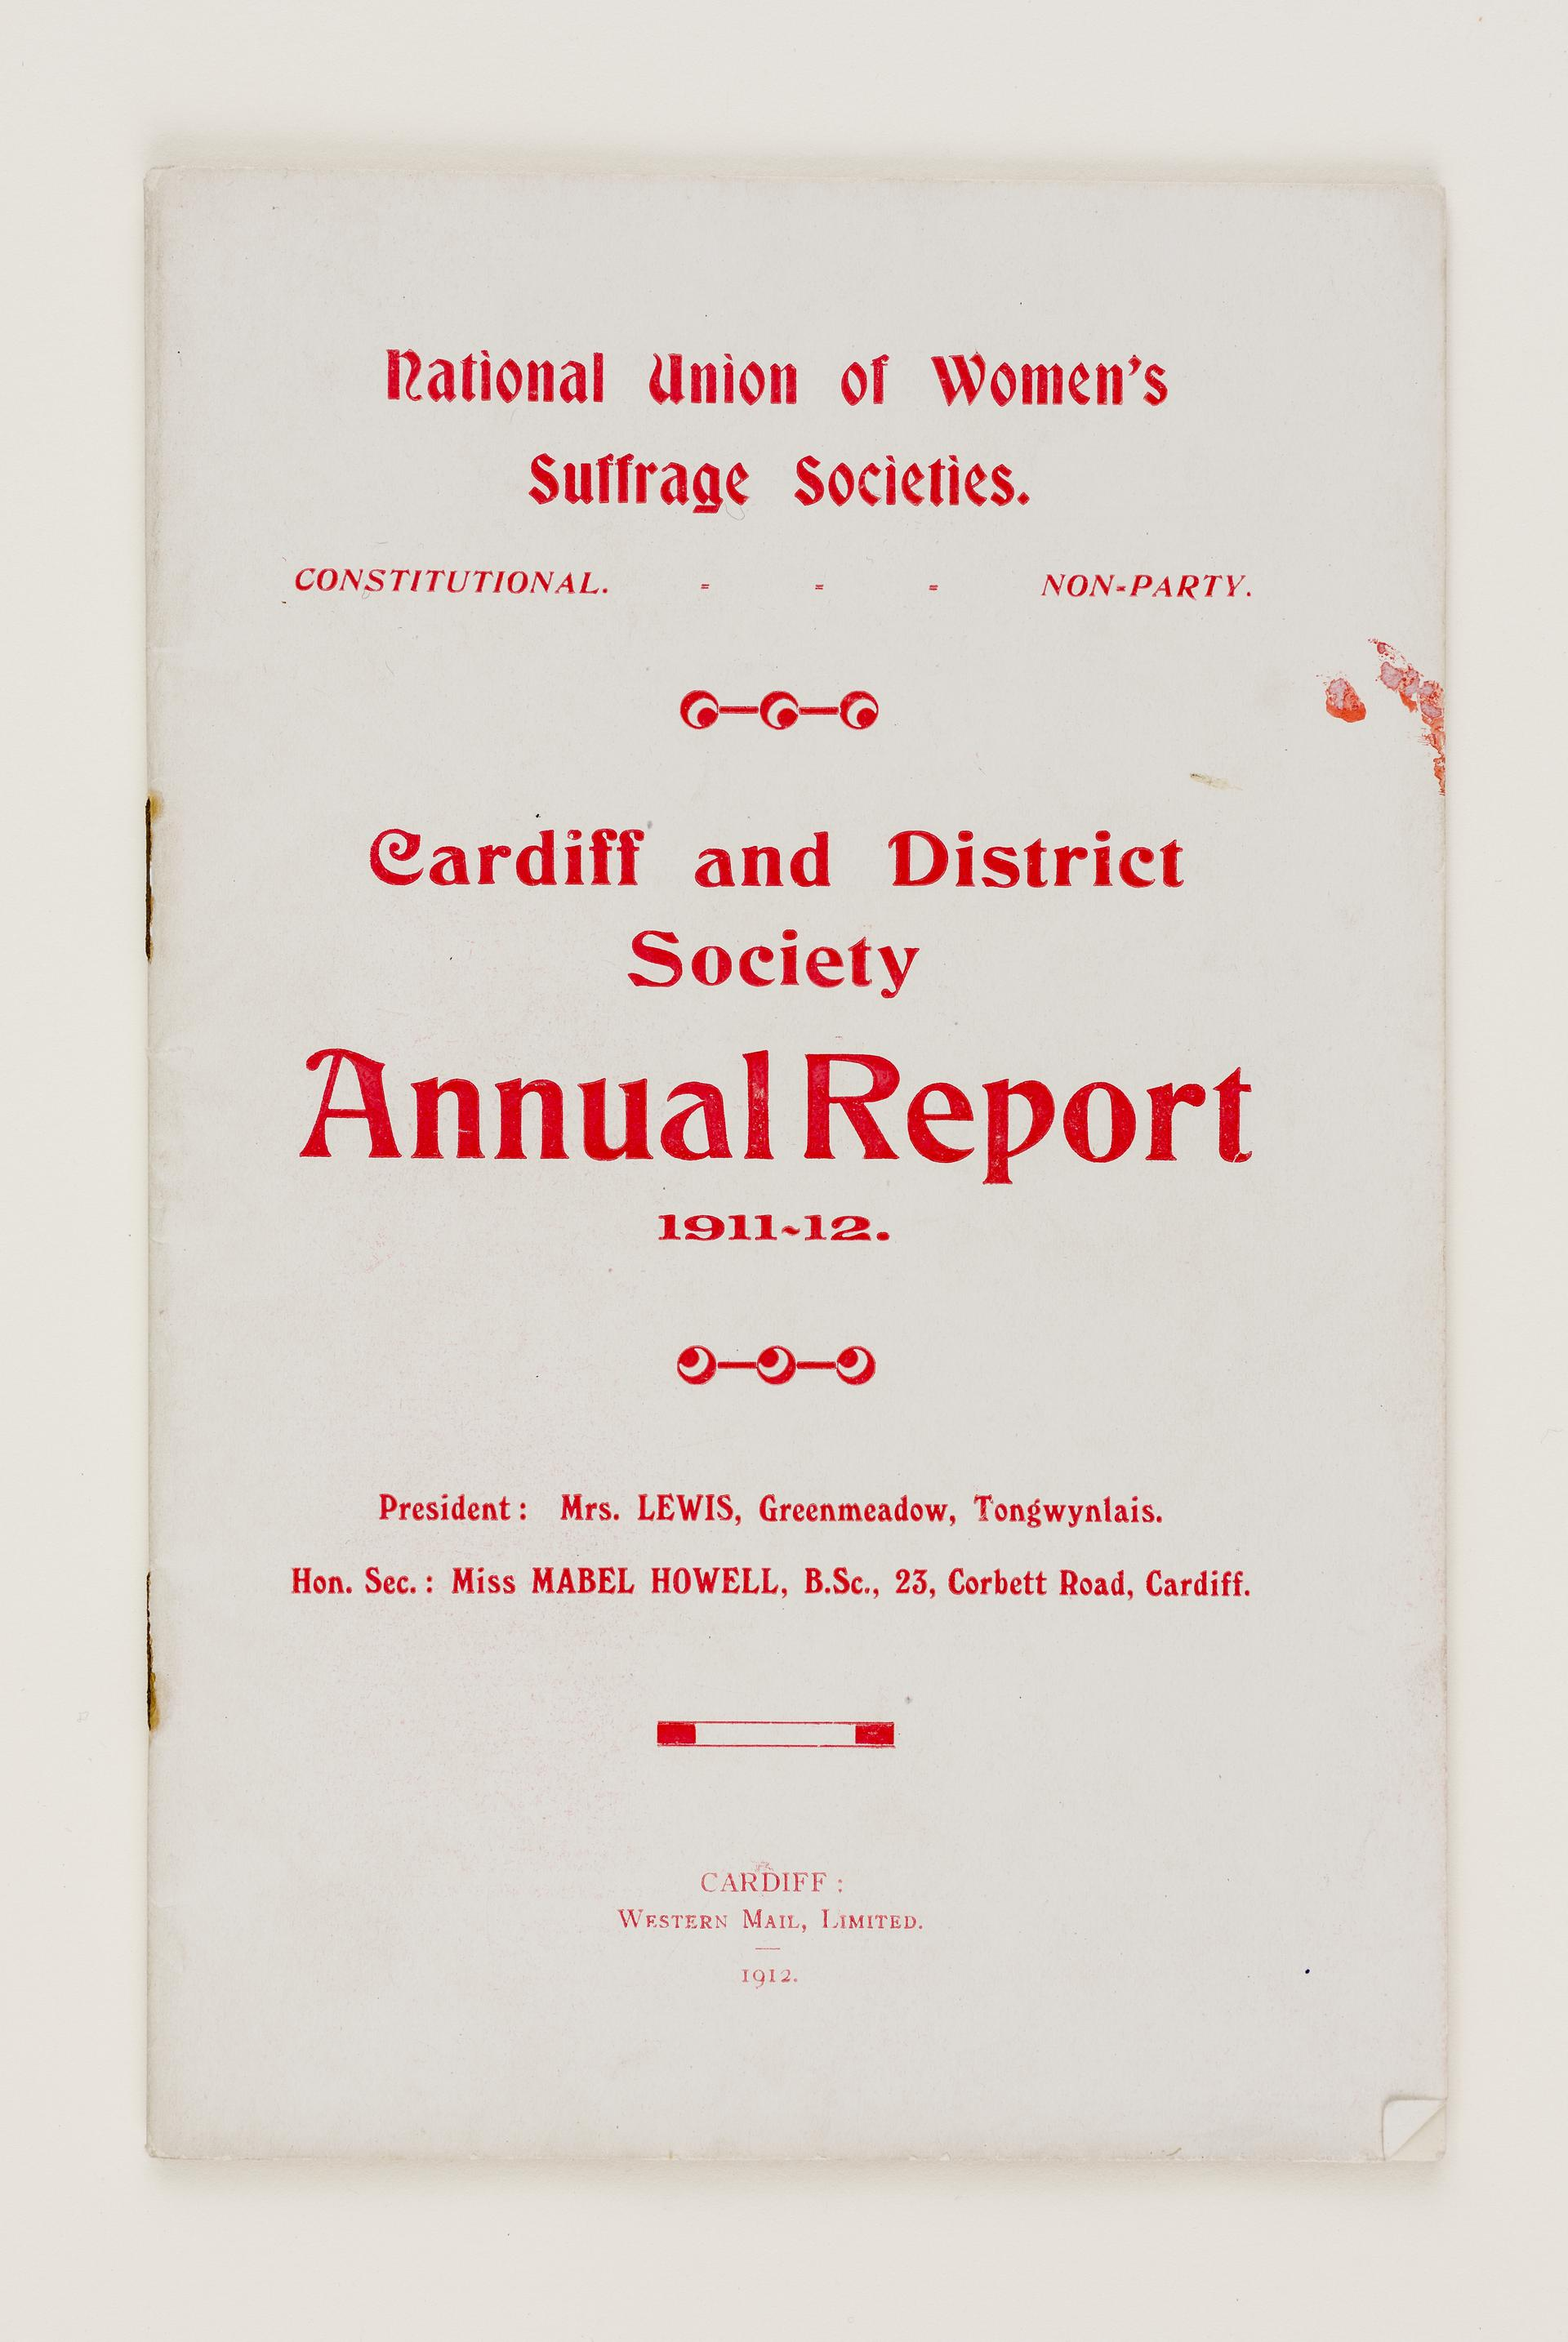 Cardiff and District Society. Annual Report 1911 - 1912